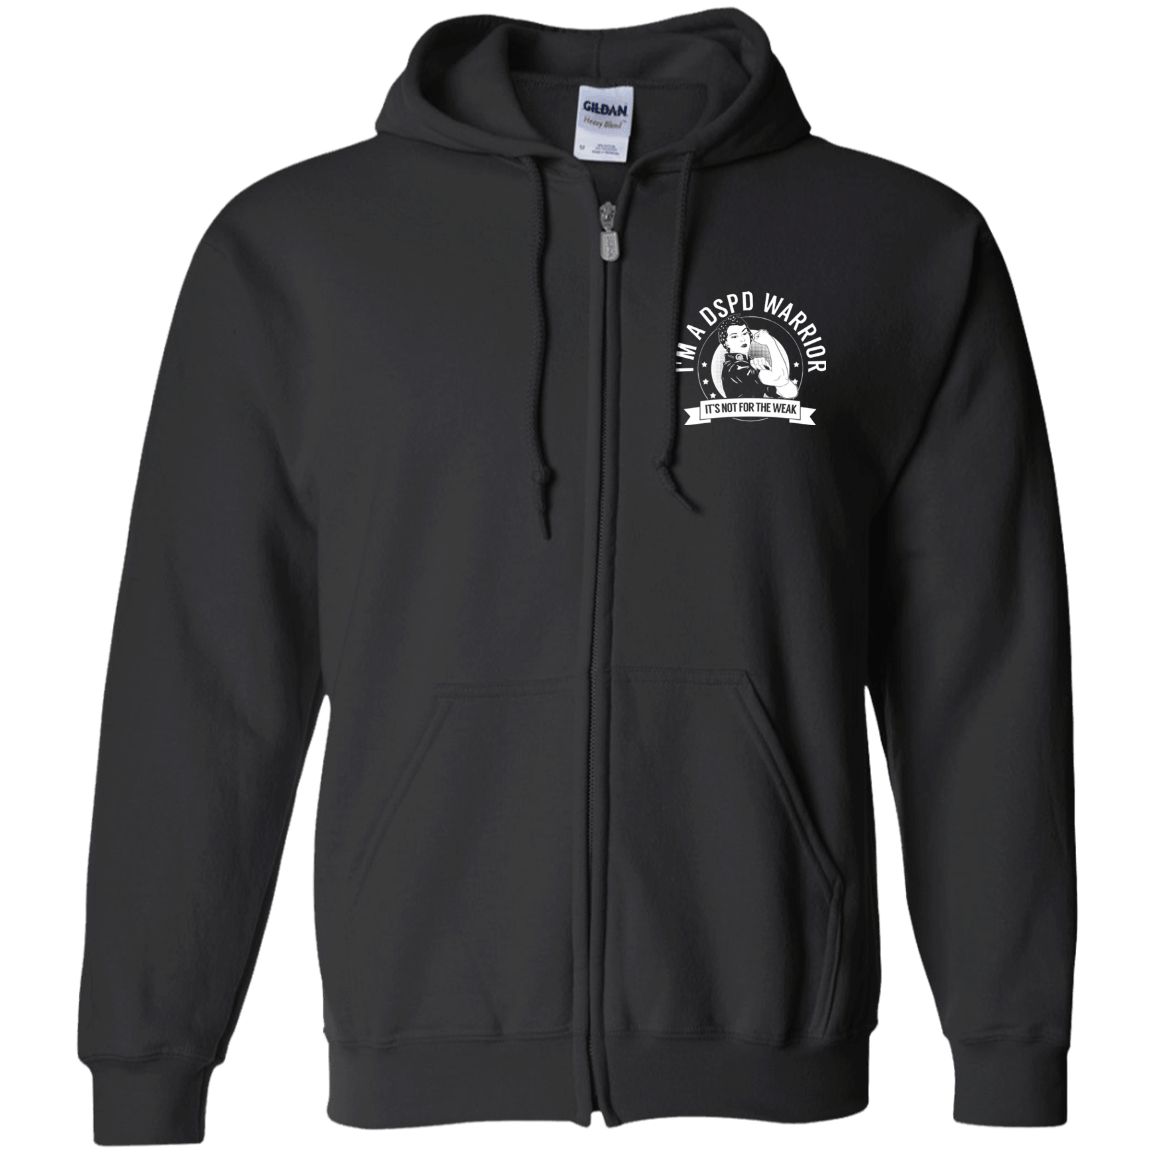 Delayed Sleep Phase Disorder - DSPD Warrior NFTW Zip Up Hooded Sweatshirt - The Unchargeables